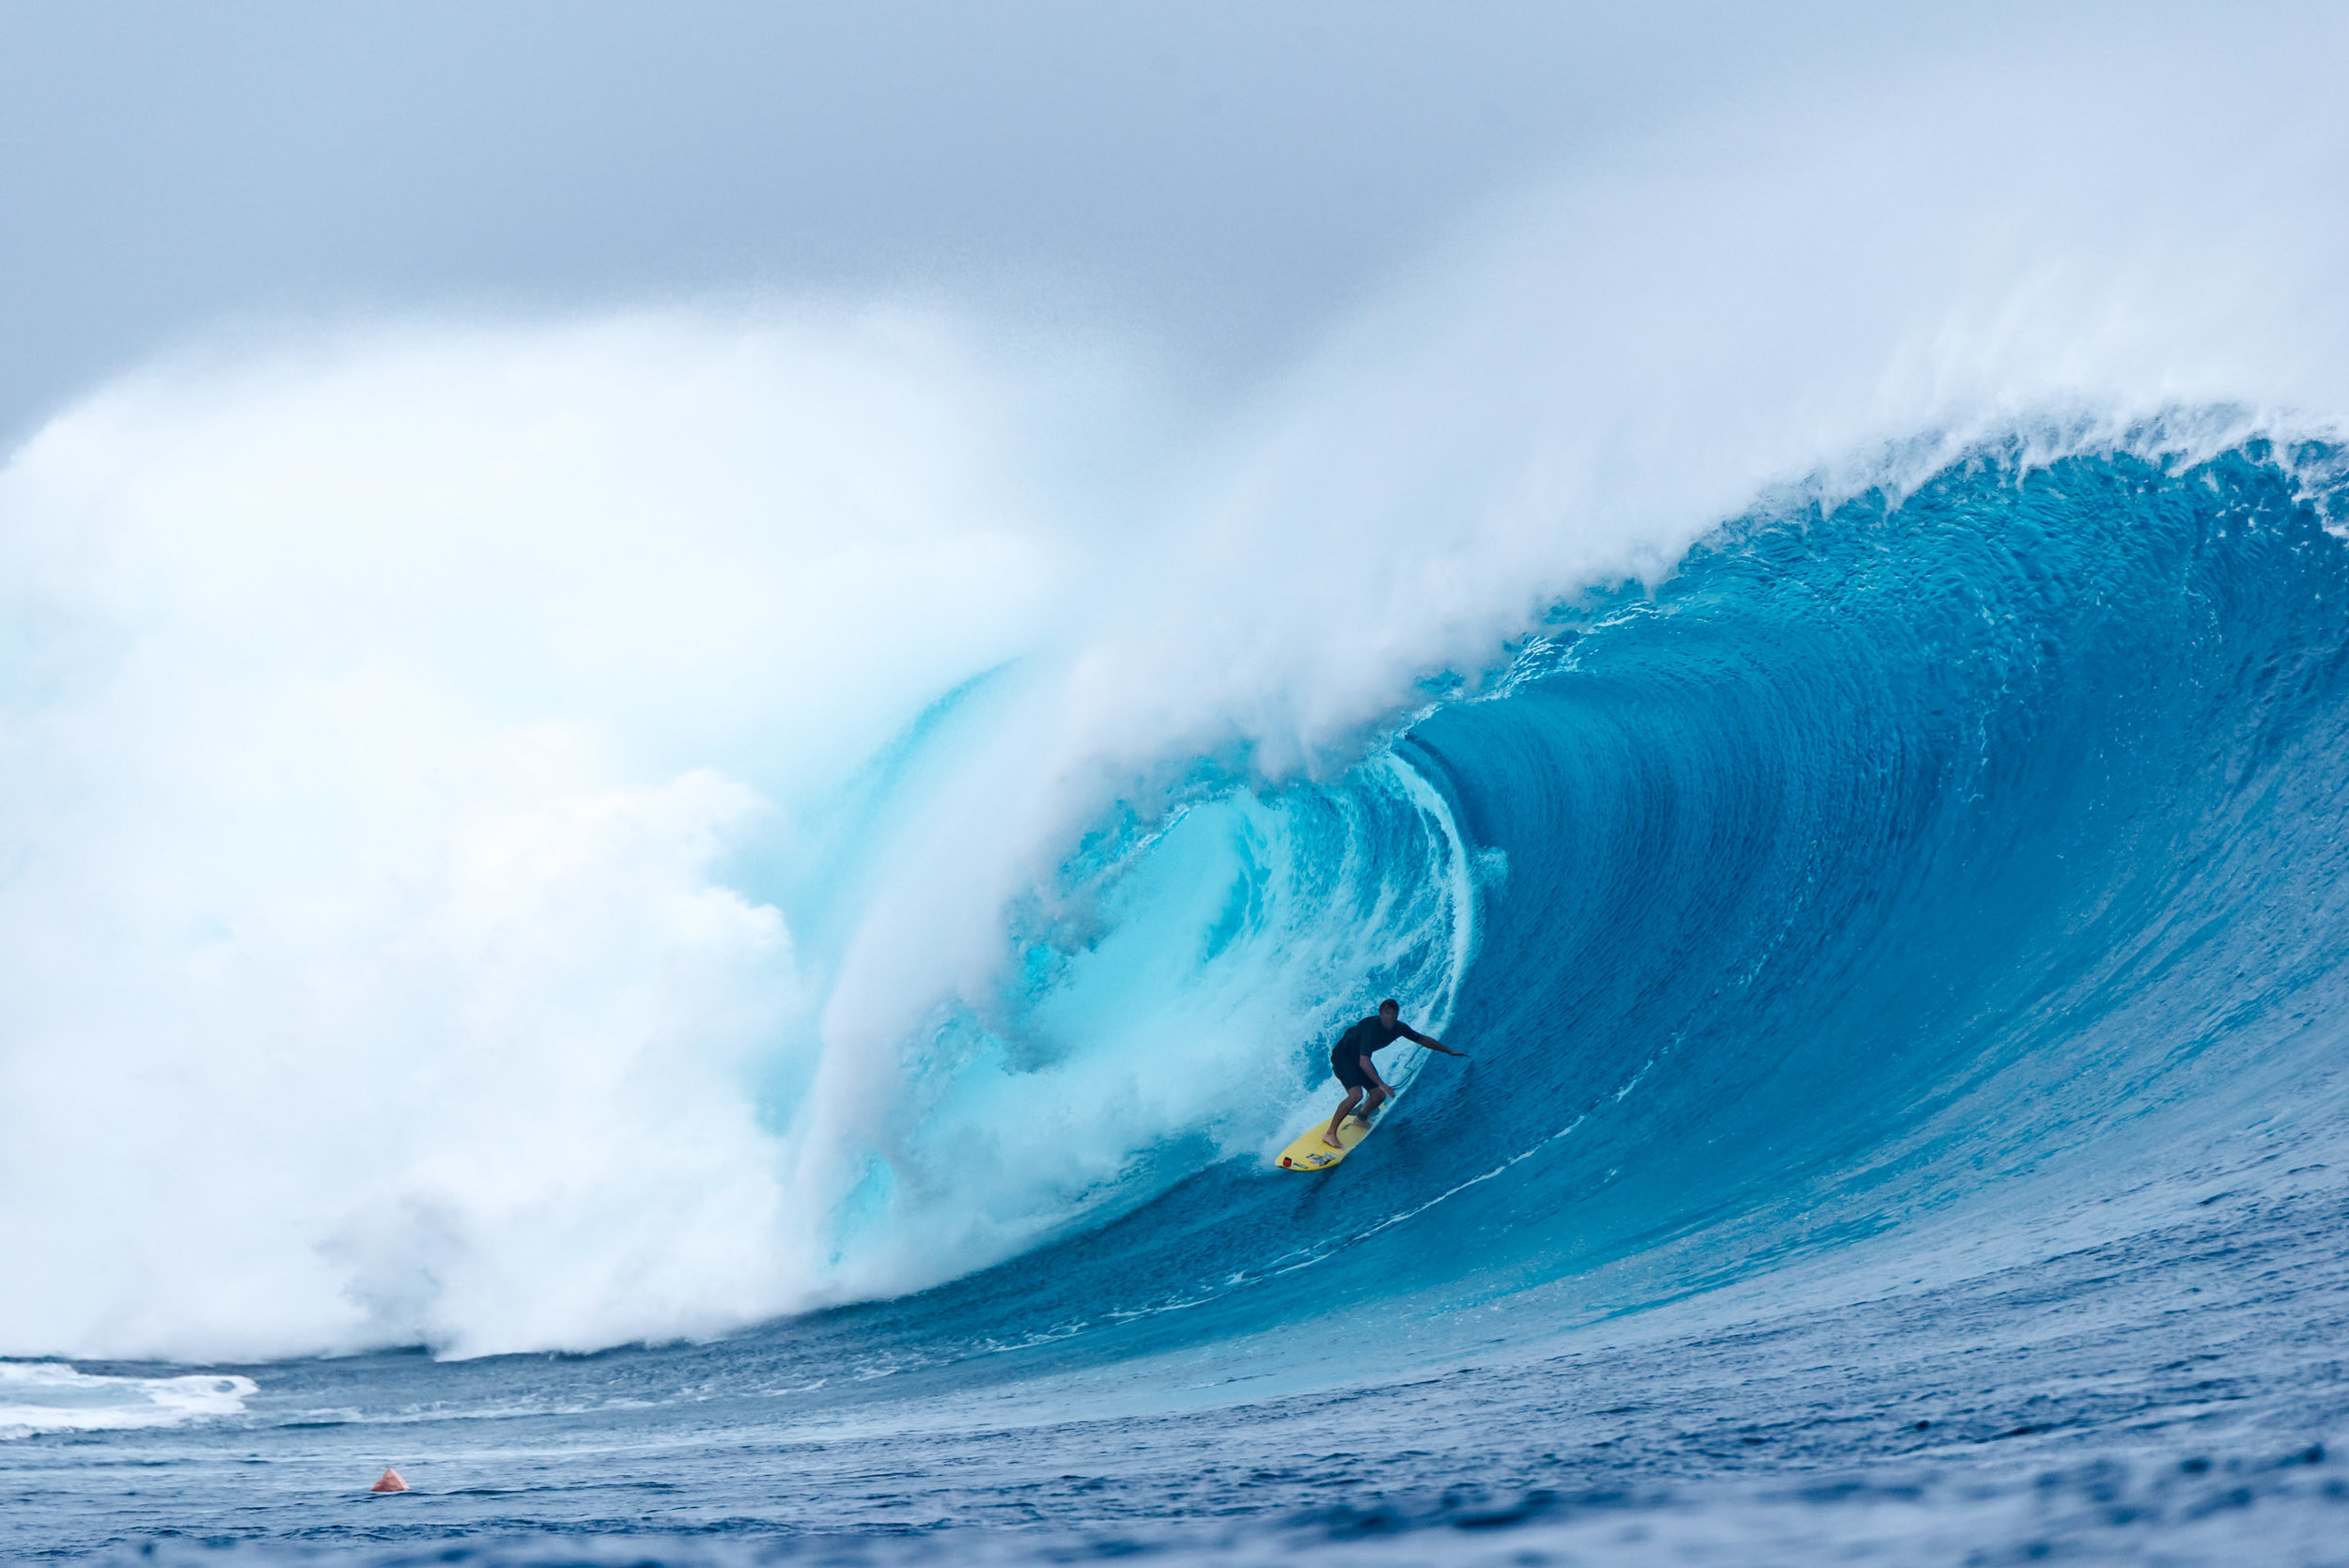 Sequence - How to take amazing surfing photos every time-9.jpg